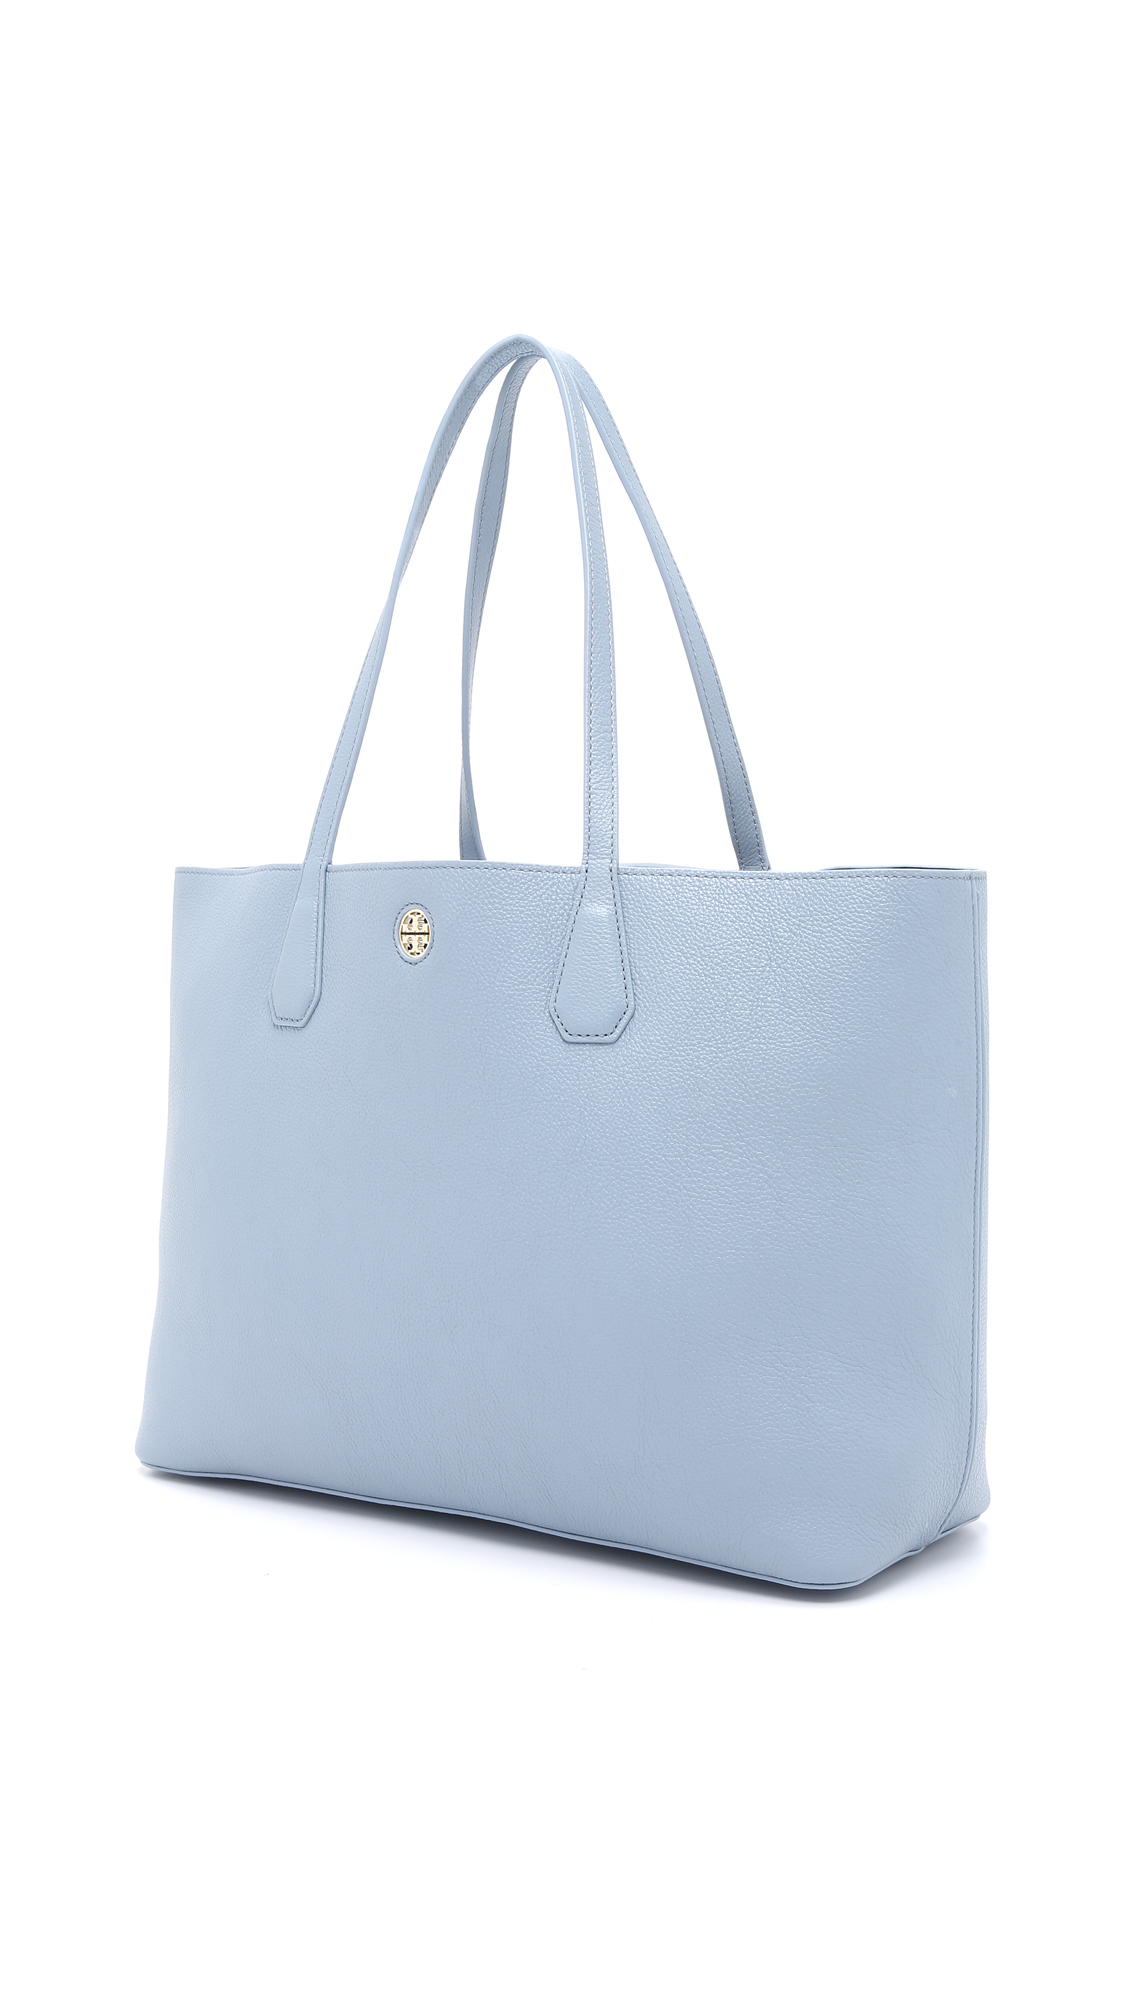 bd7917ab5336 ... italy tory burch perry tote cloud tory navy in blue lyst 6dad7 7c91e